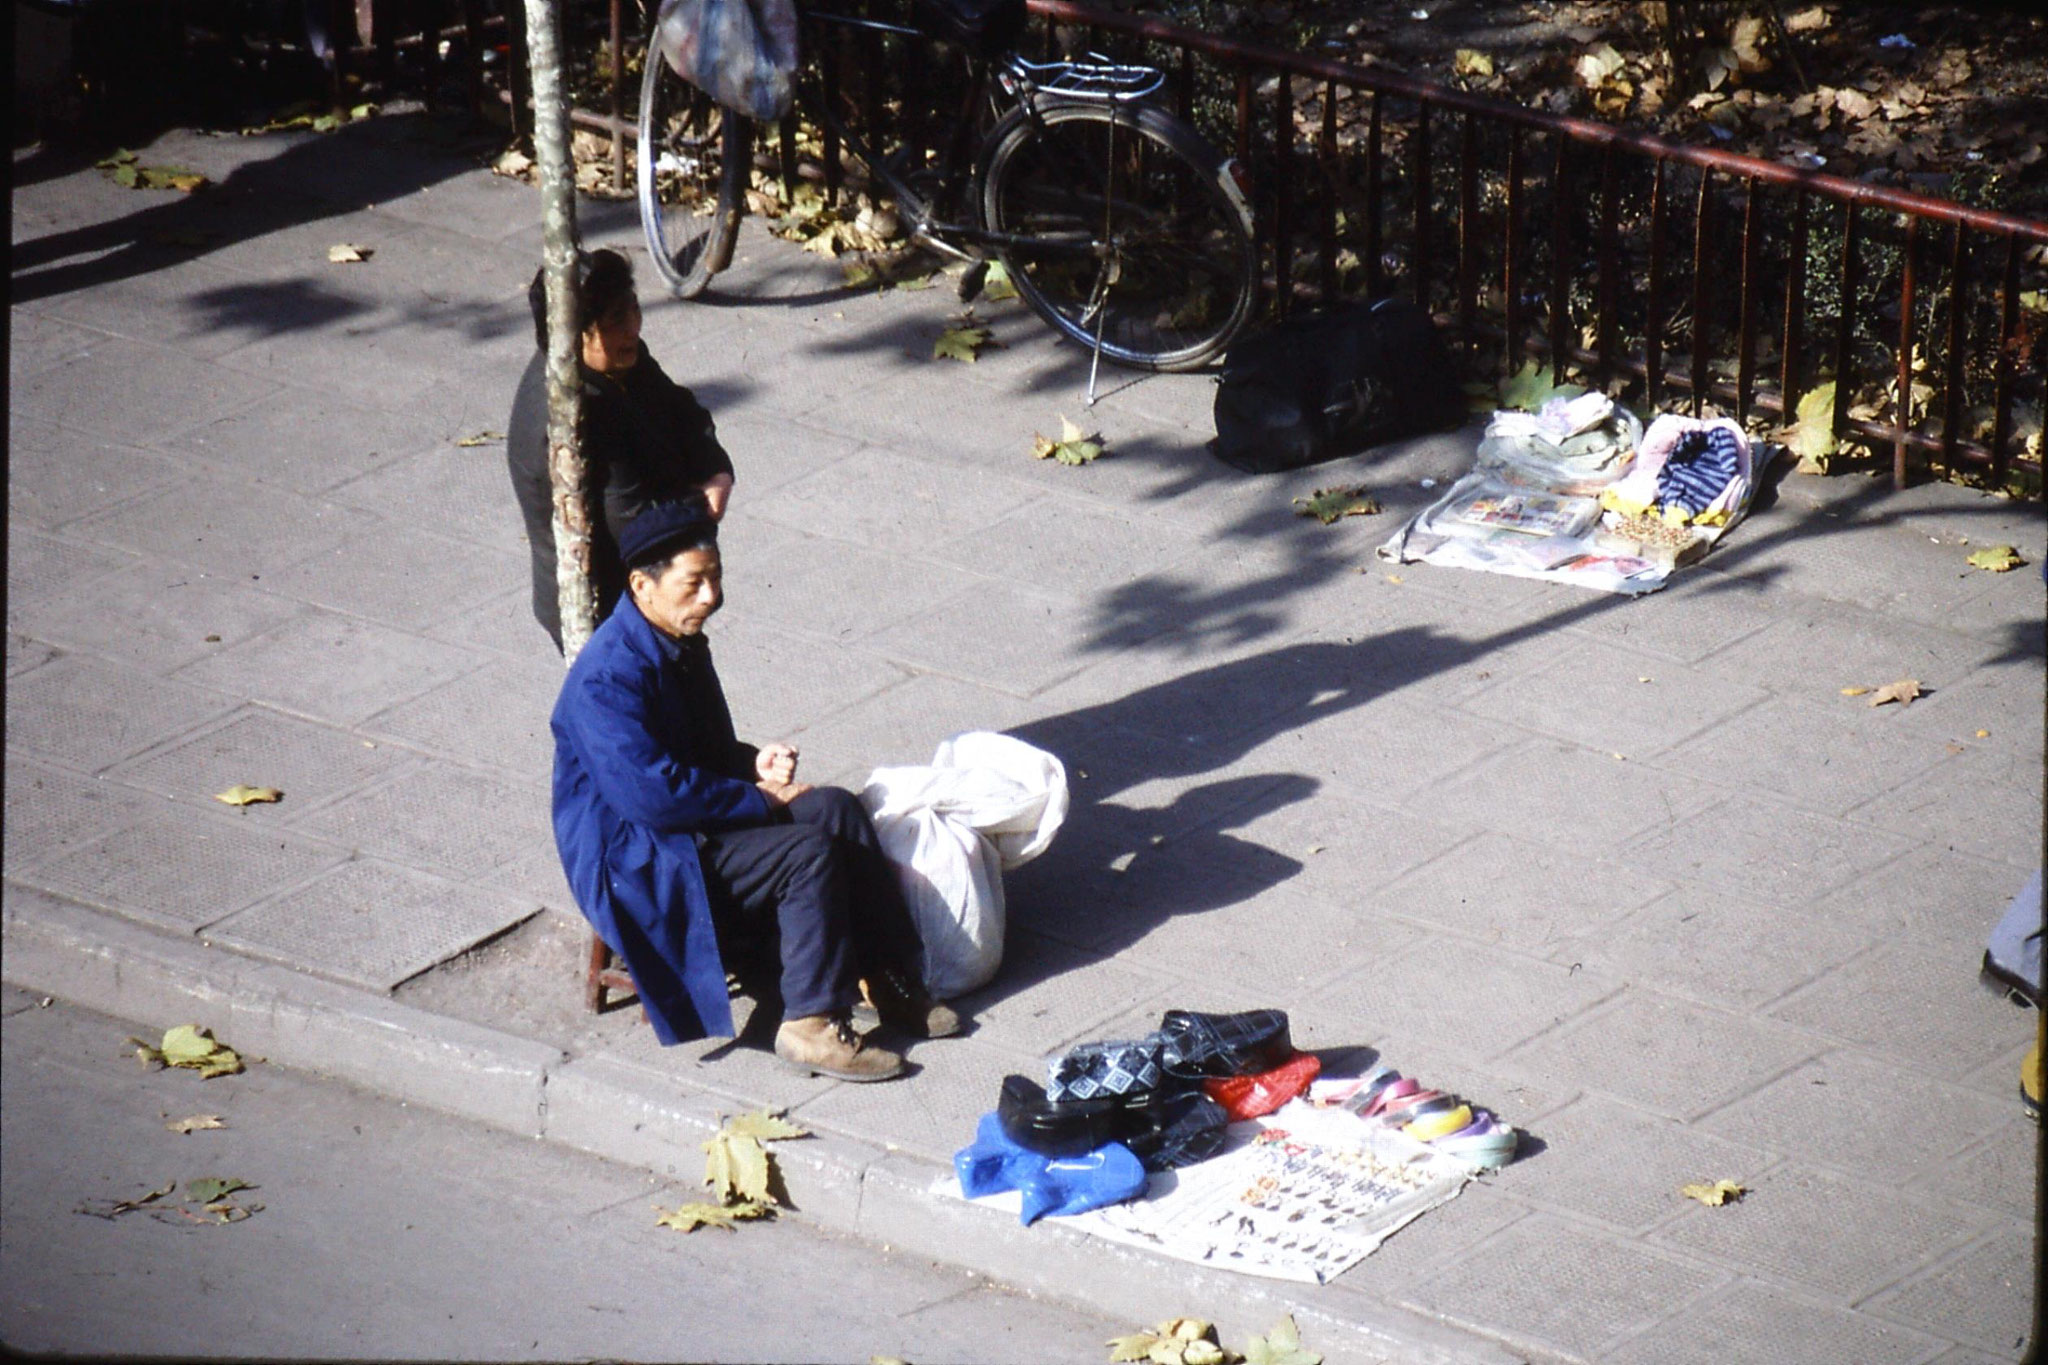 11/12/1988: 28: Nanjing pavement shoe seller